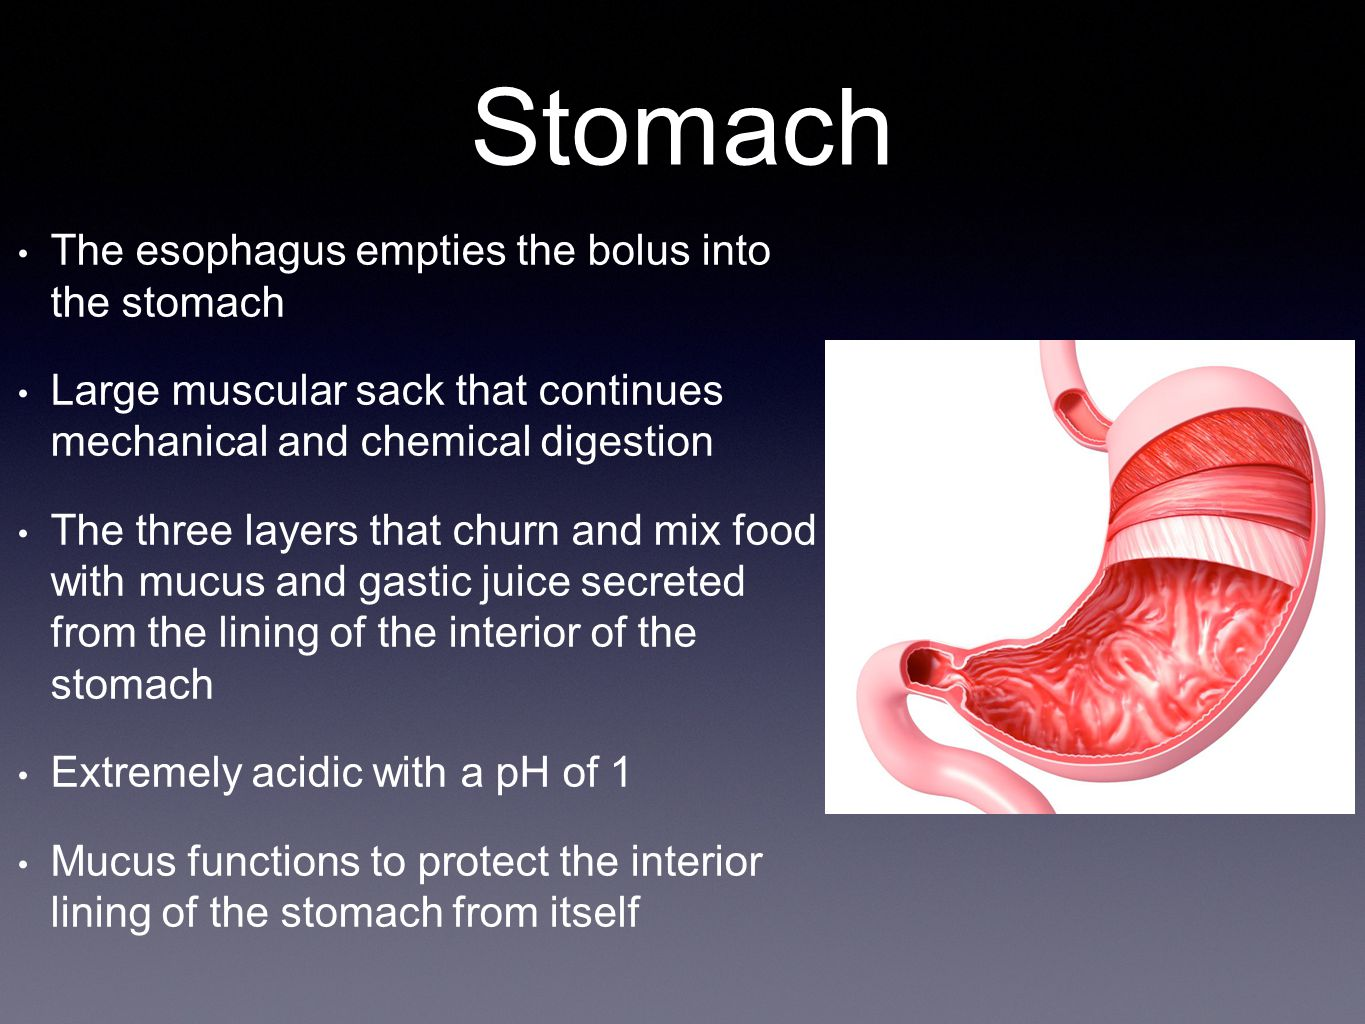 Stomach The esophagus empties the bolus into the stomach